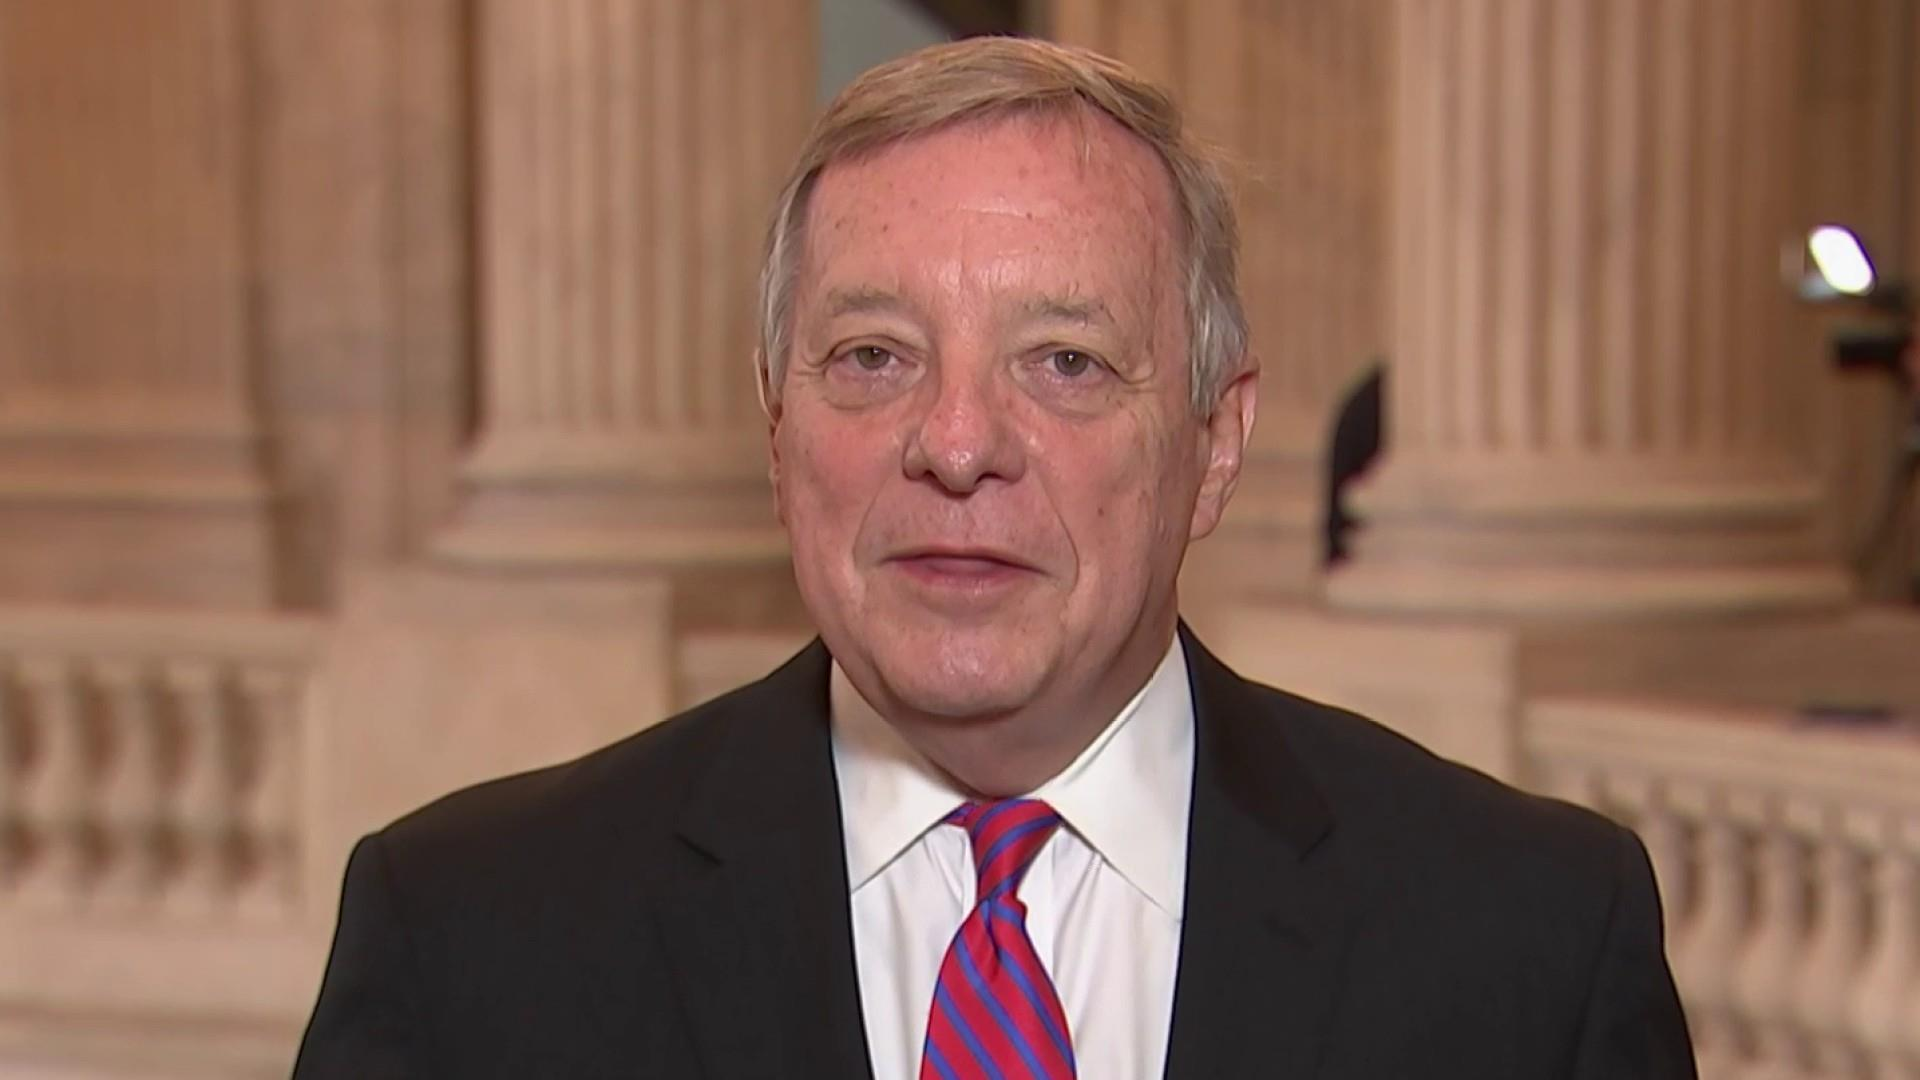 Sen. Durbin: I respect Muller and I expect no breakthroughs